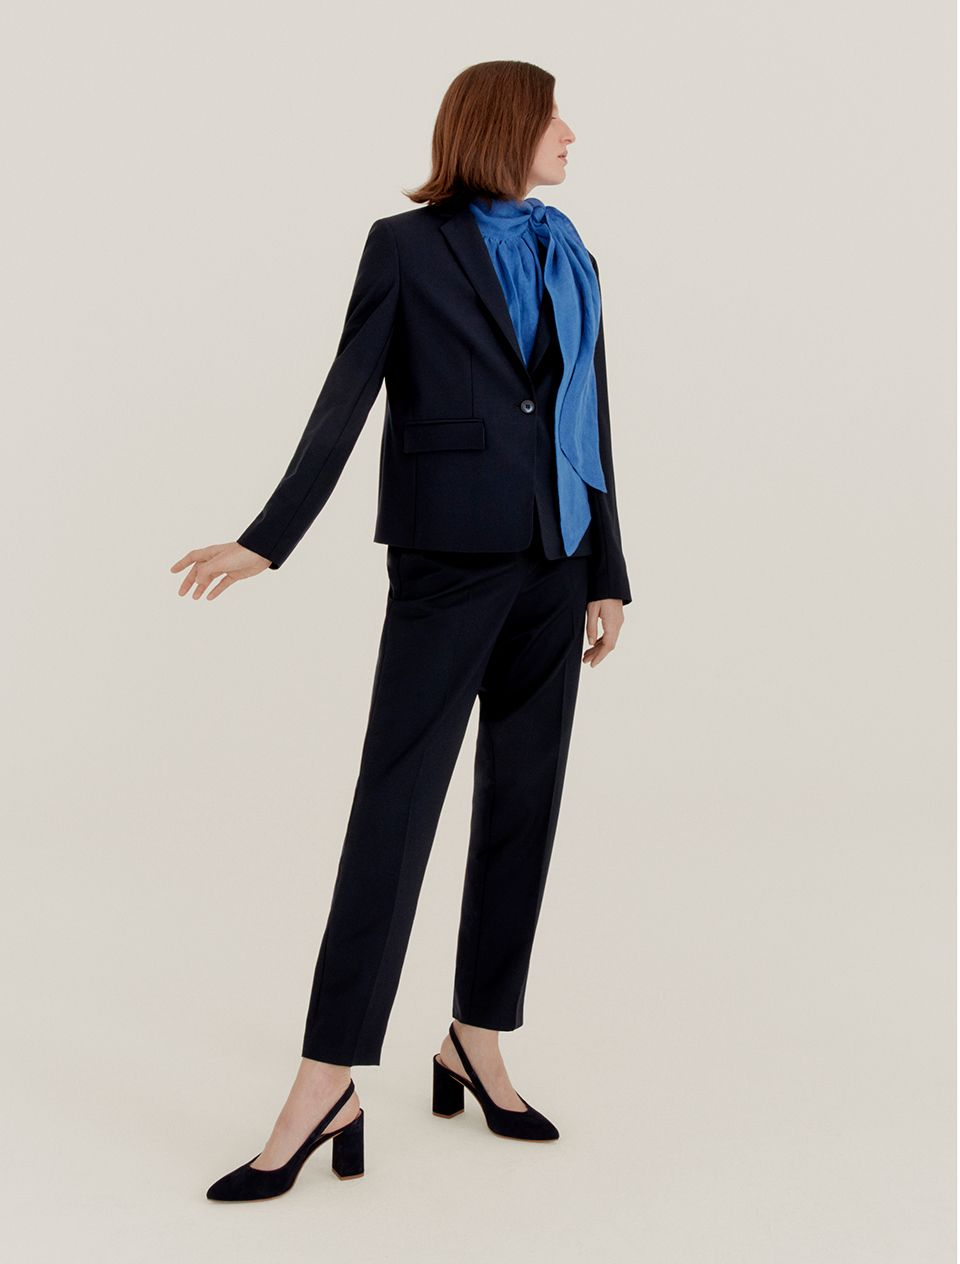 Woman in a black suit and blue blouse